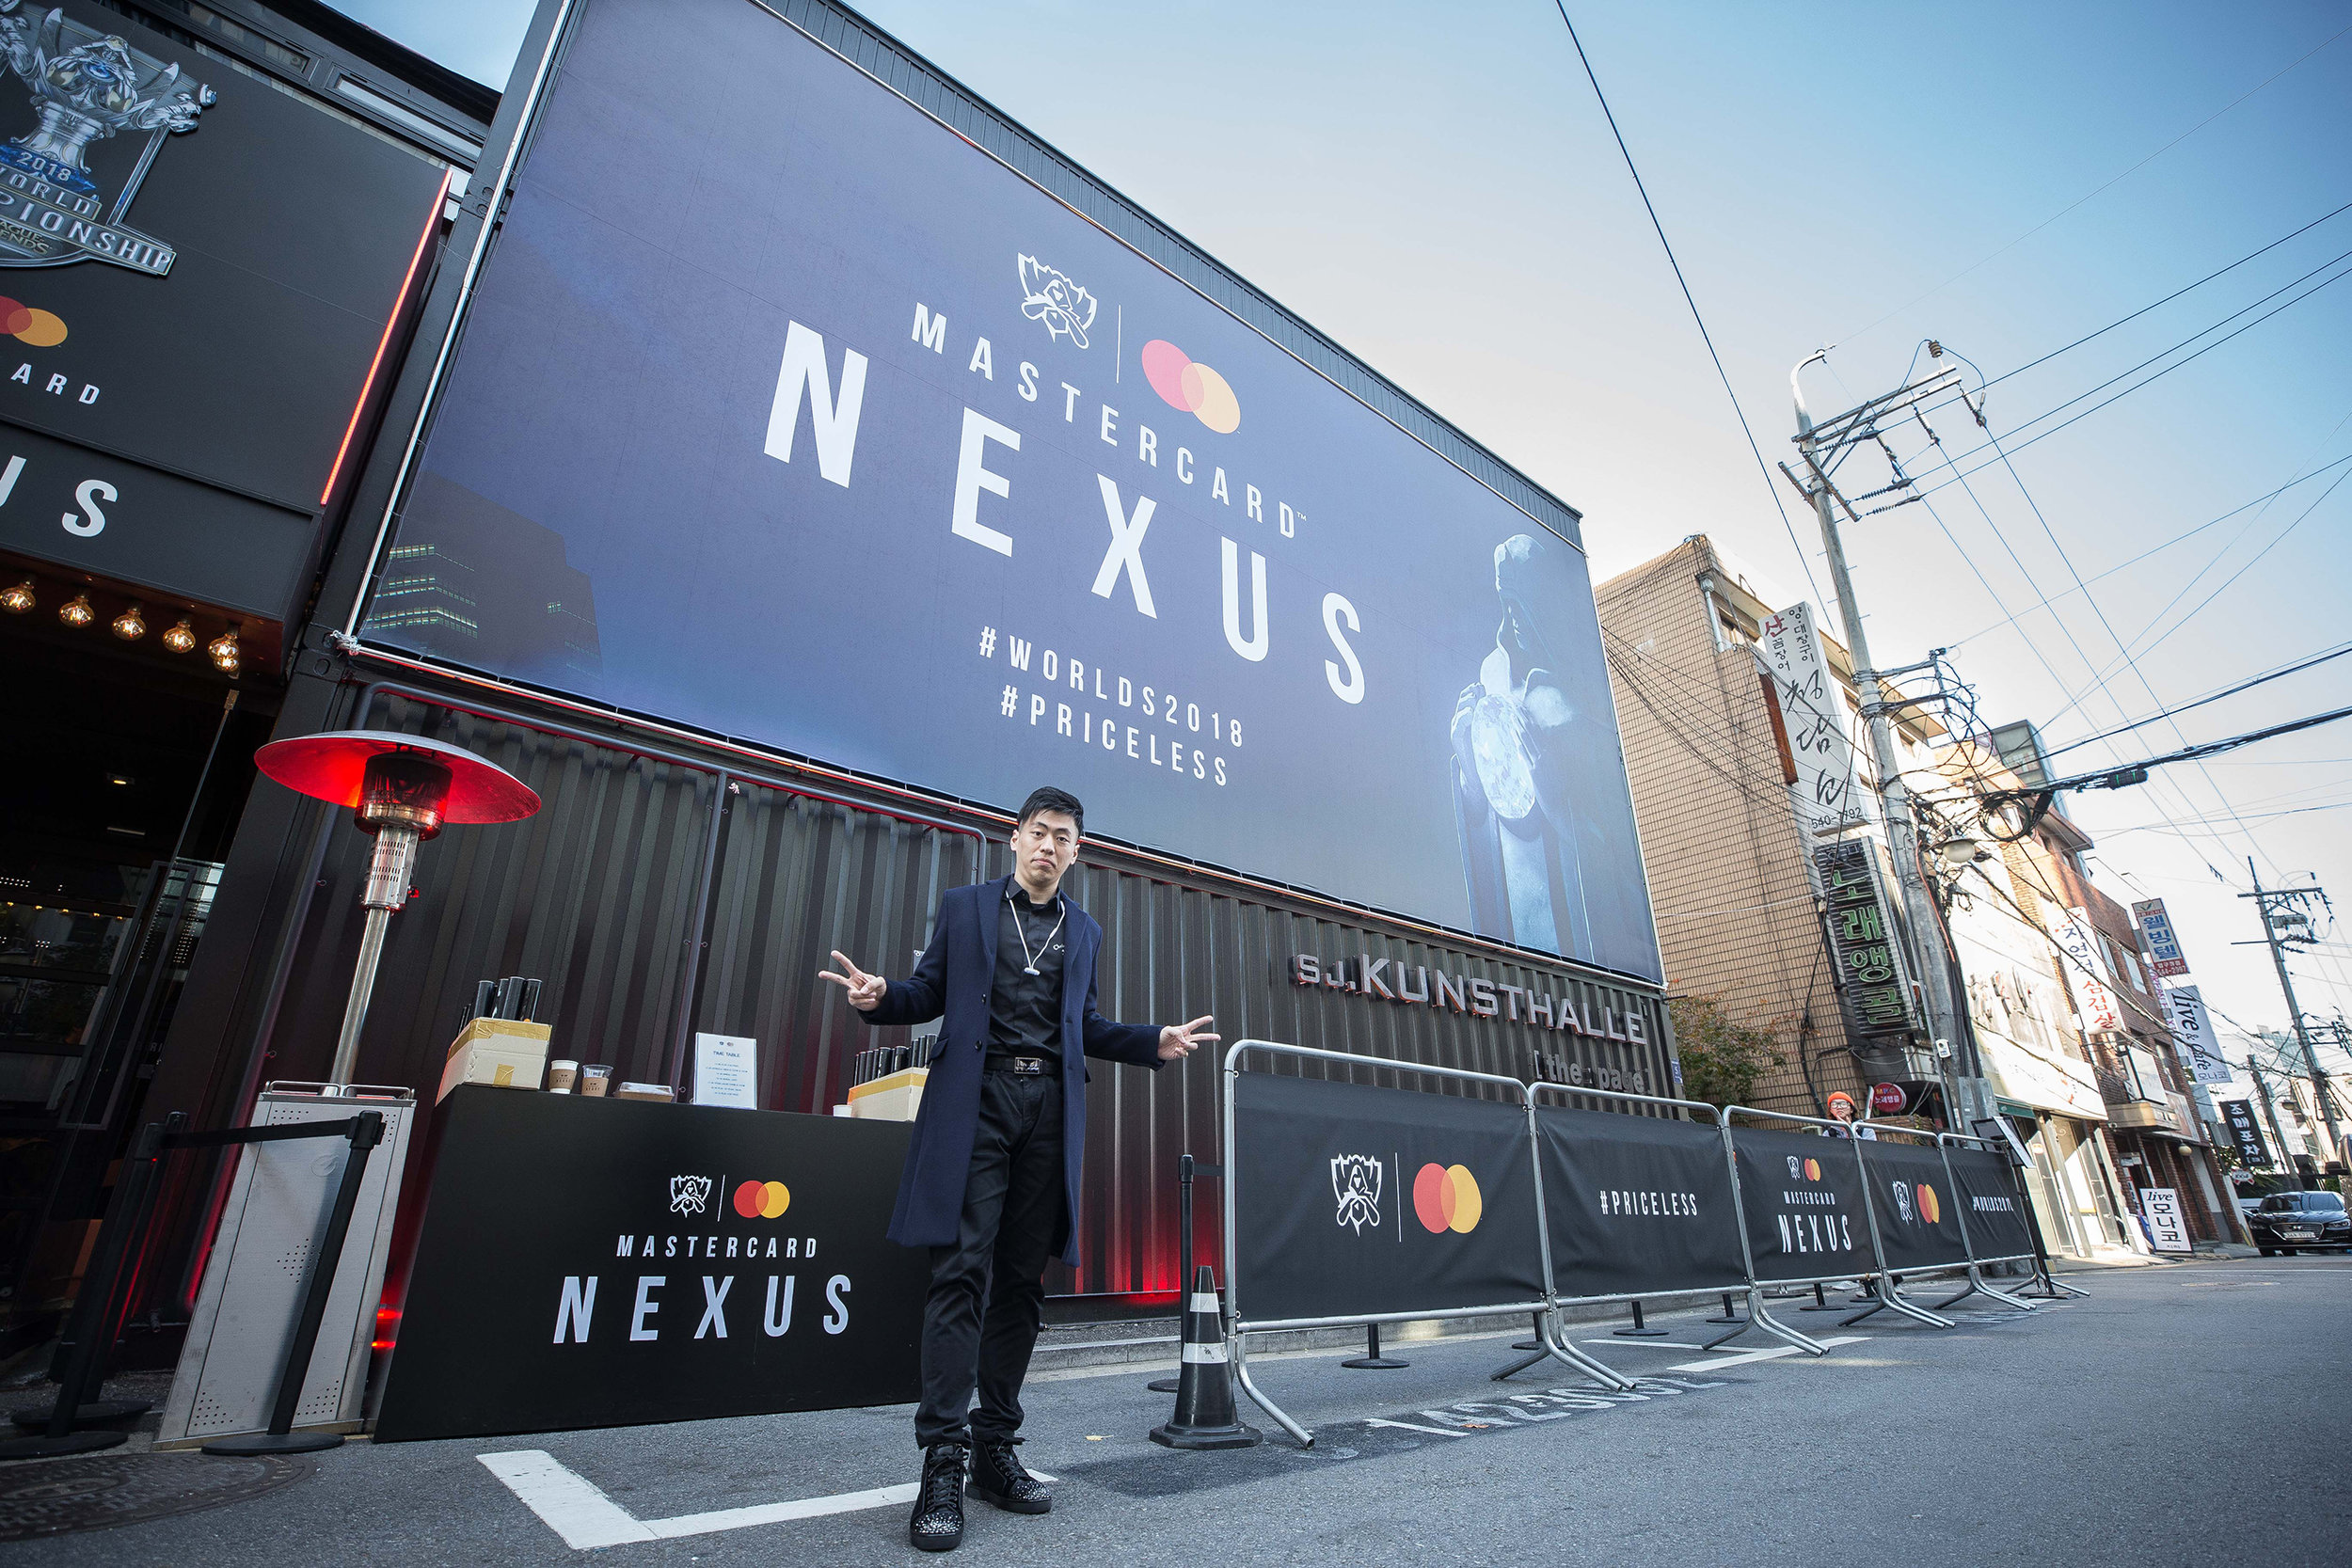 Gamer influencer at Mastercard Nexus during the 2018 League of Legends World Championship on November 2, 2018 in Incheon, South Korea.  Photo by Hannah Smith/ESPAT Media for Mastercard